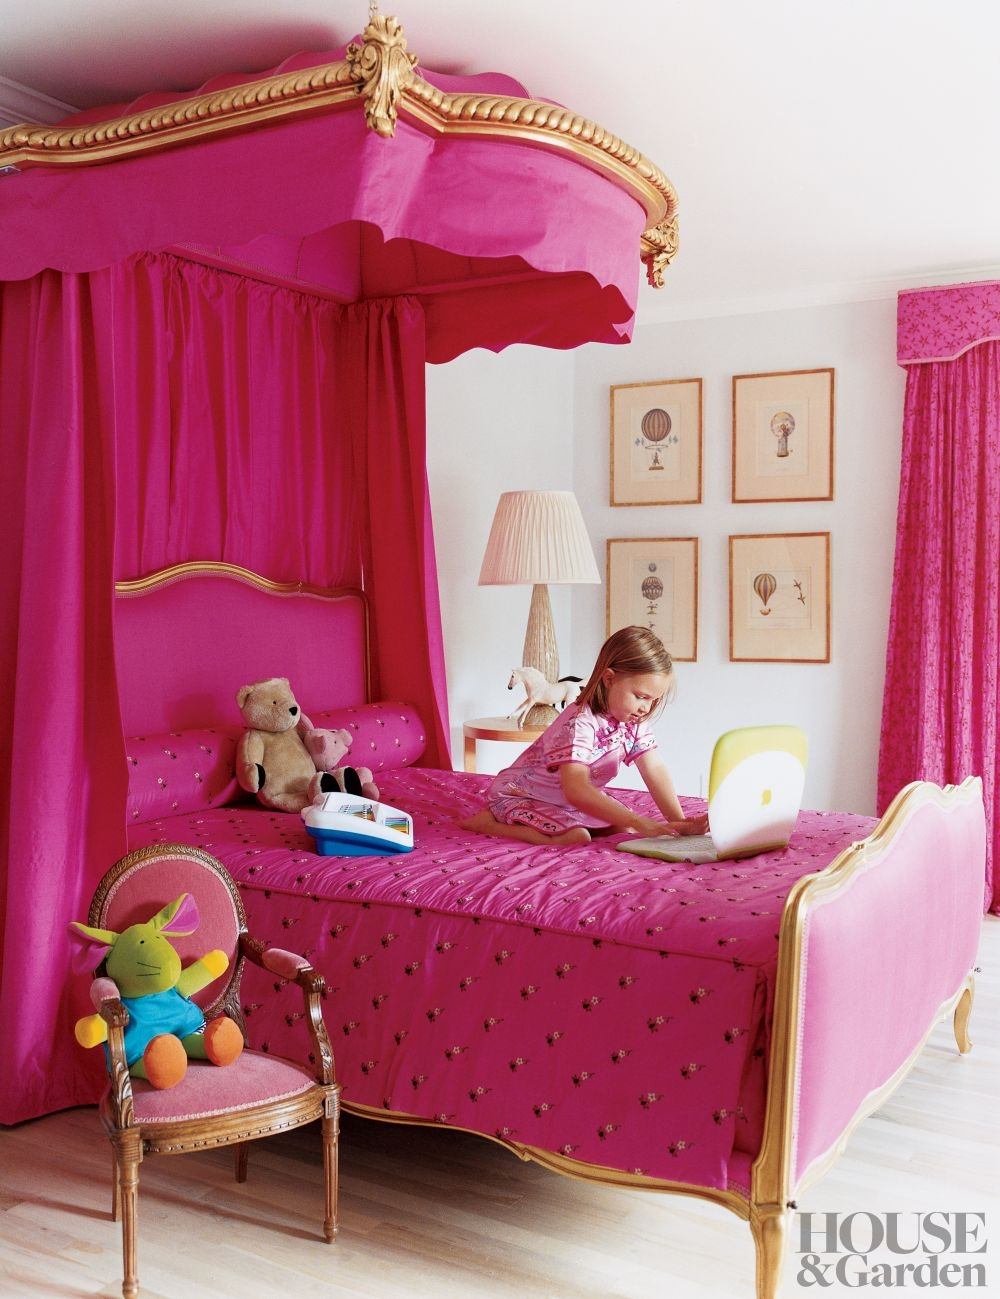 traditional-childrens-room-bridgehampton-new-york-200508_1000-watermarked